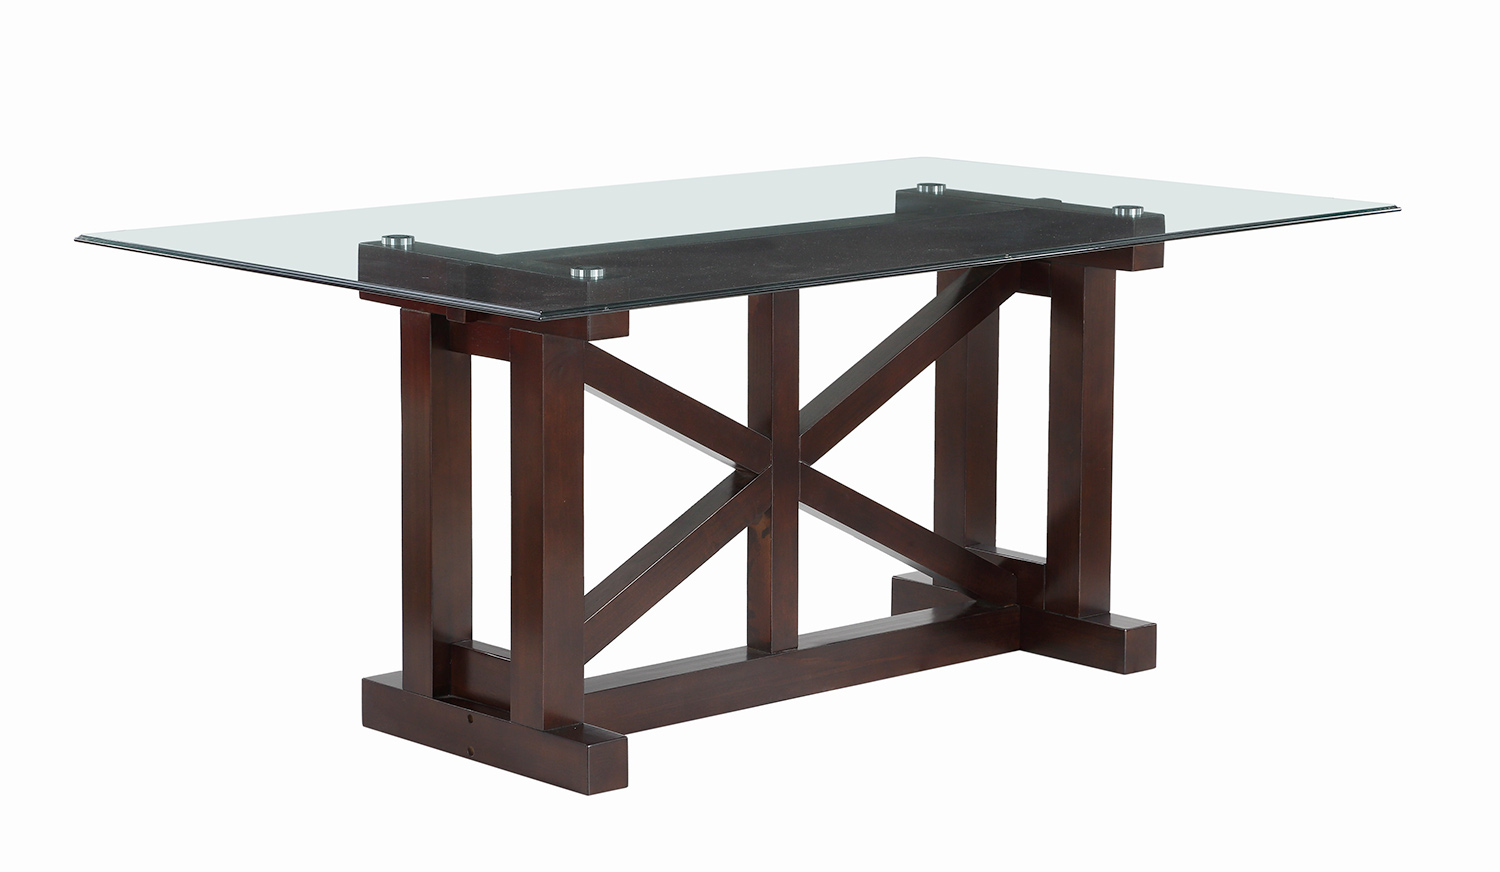 Homelegance Salema Glass Top Dining Table - Dark Brown